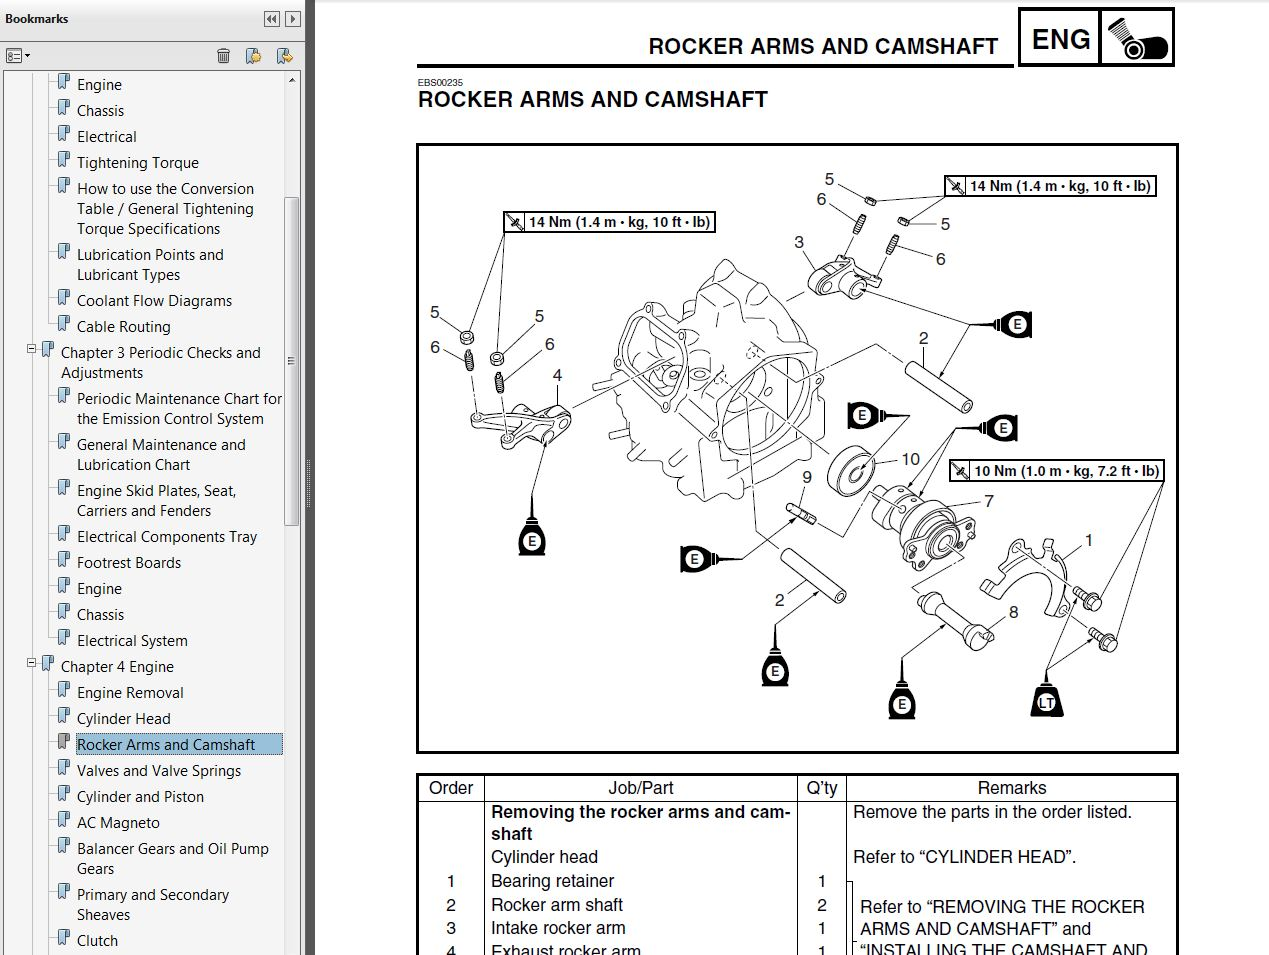 yamaha r6 1999 tach wiring diagram for motorized bicycle 2001 r1 get free image about